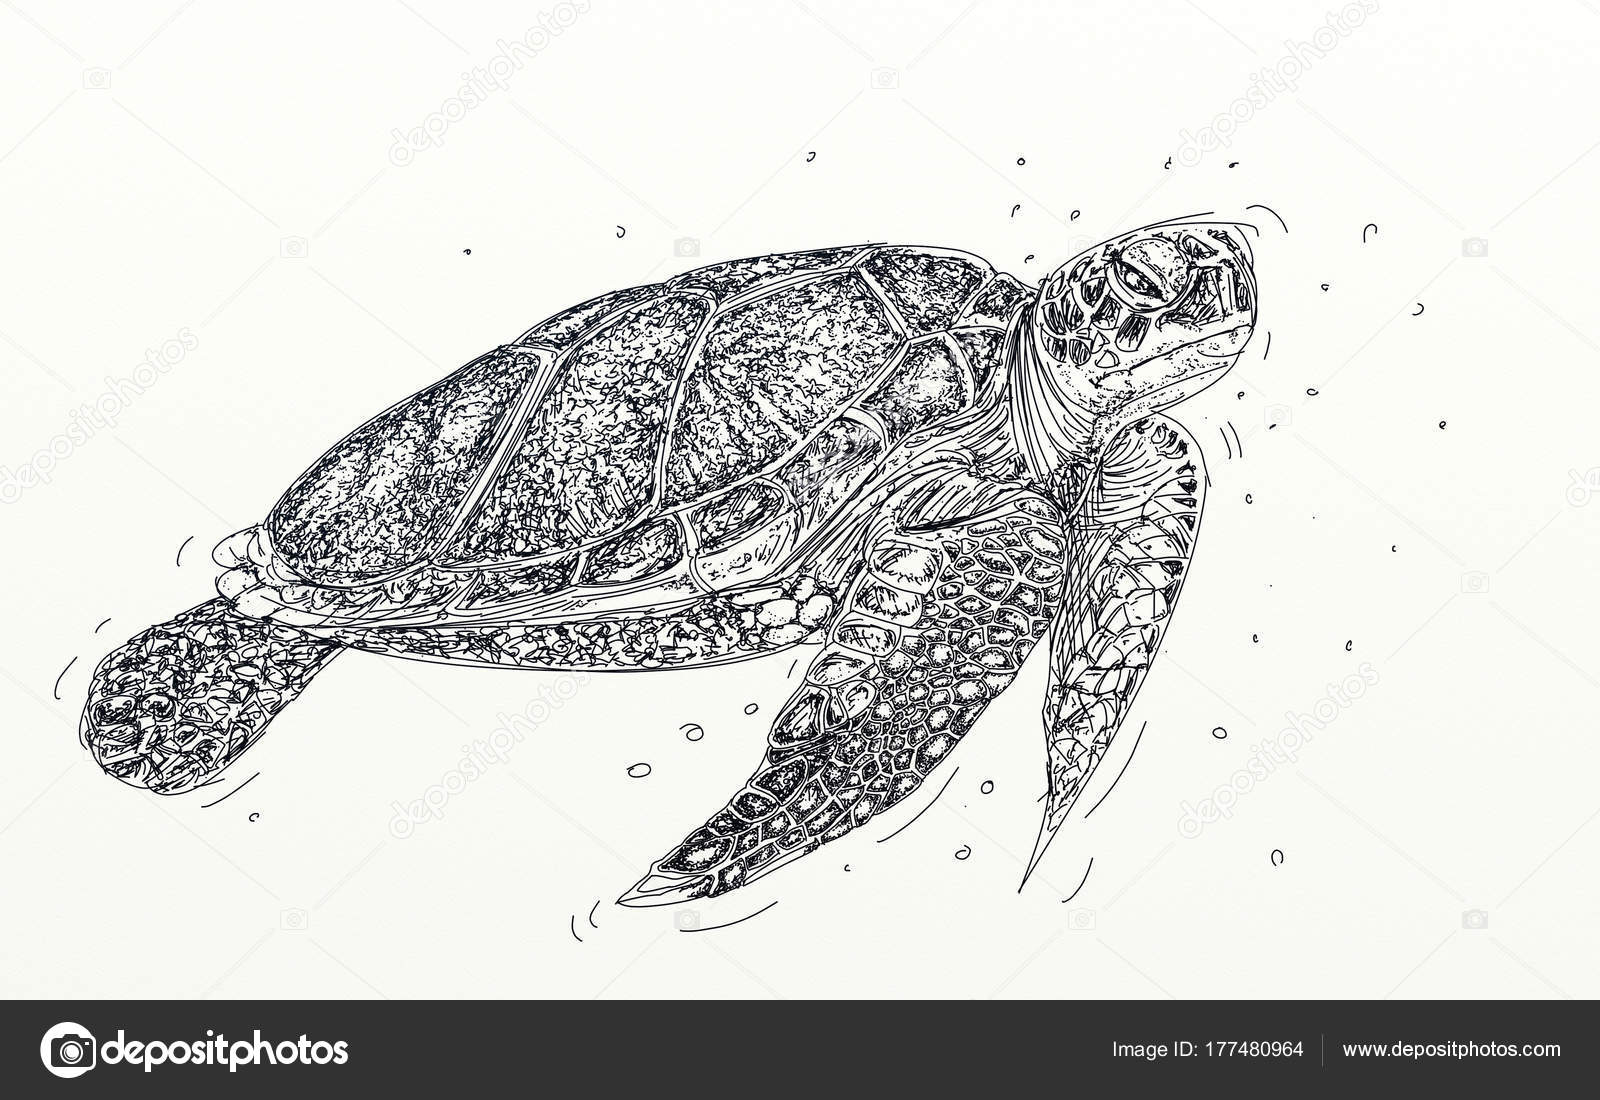 Une Tortue Mer Tortue Realiste Photographie Silviagaudenzi